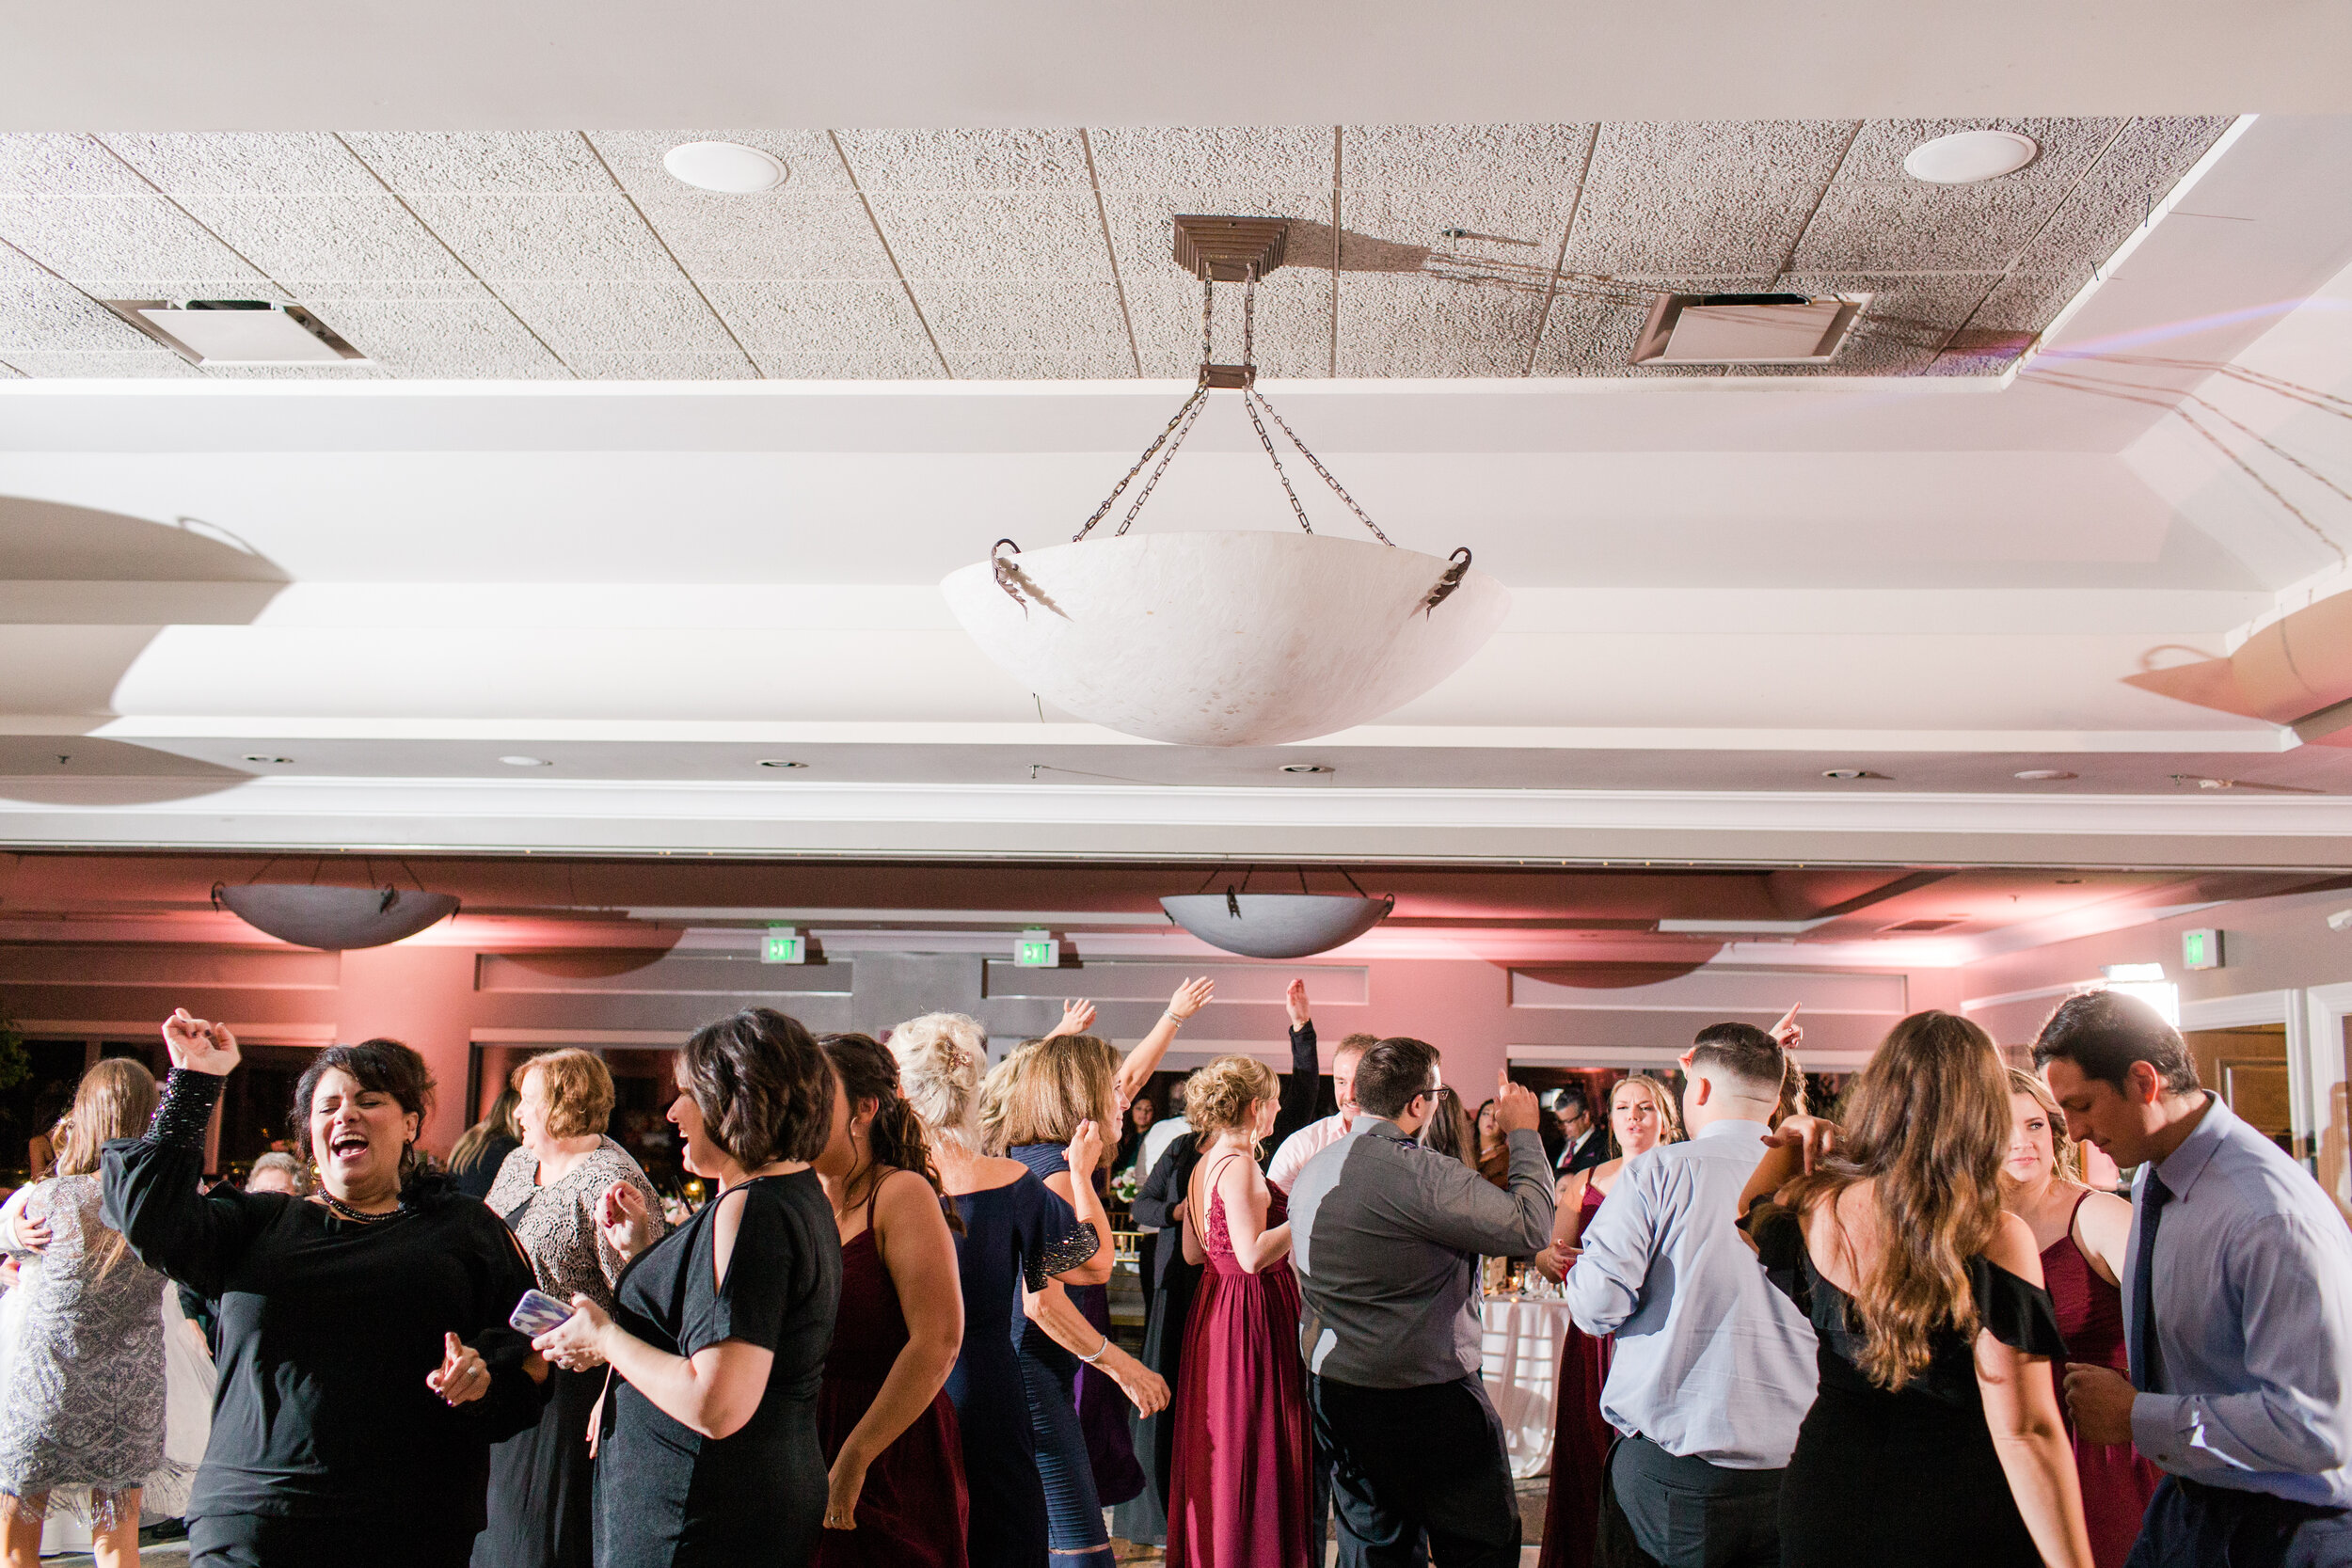 So. much. dancing. all night long! And a few nighttime portraits to end the evening!